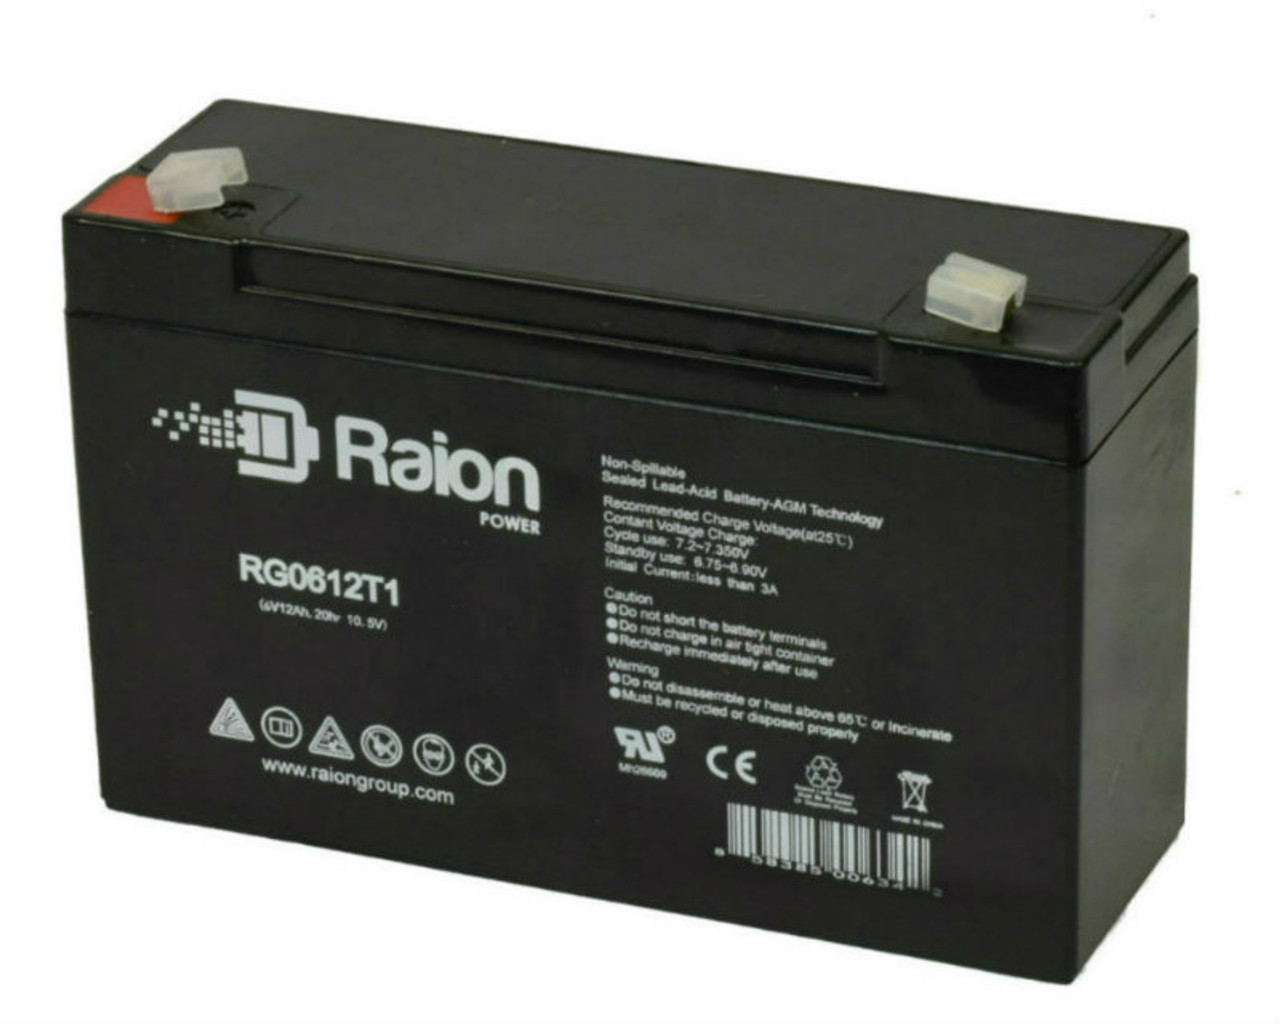 Raion Power RG06120T1 Replacement Battery Pack for Chloride 100001078 emergency light